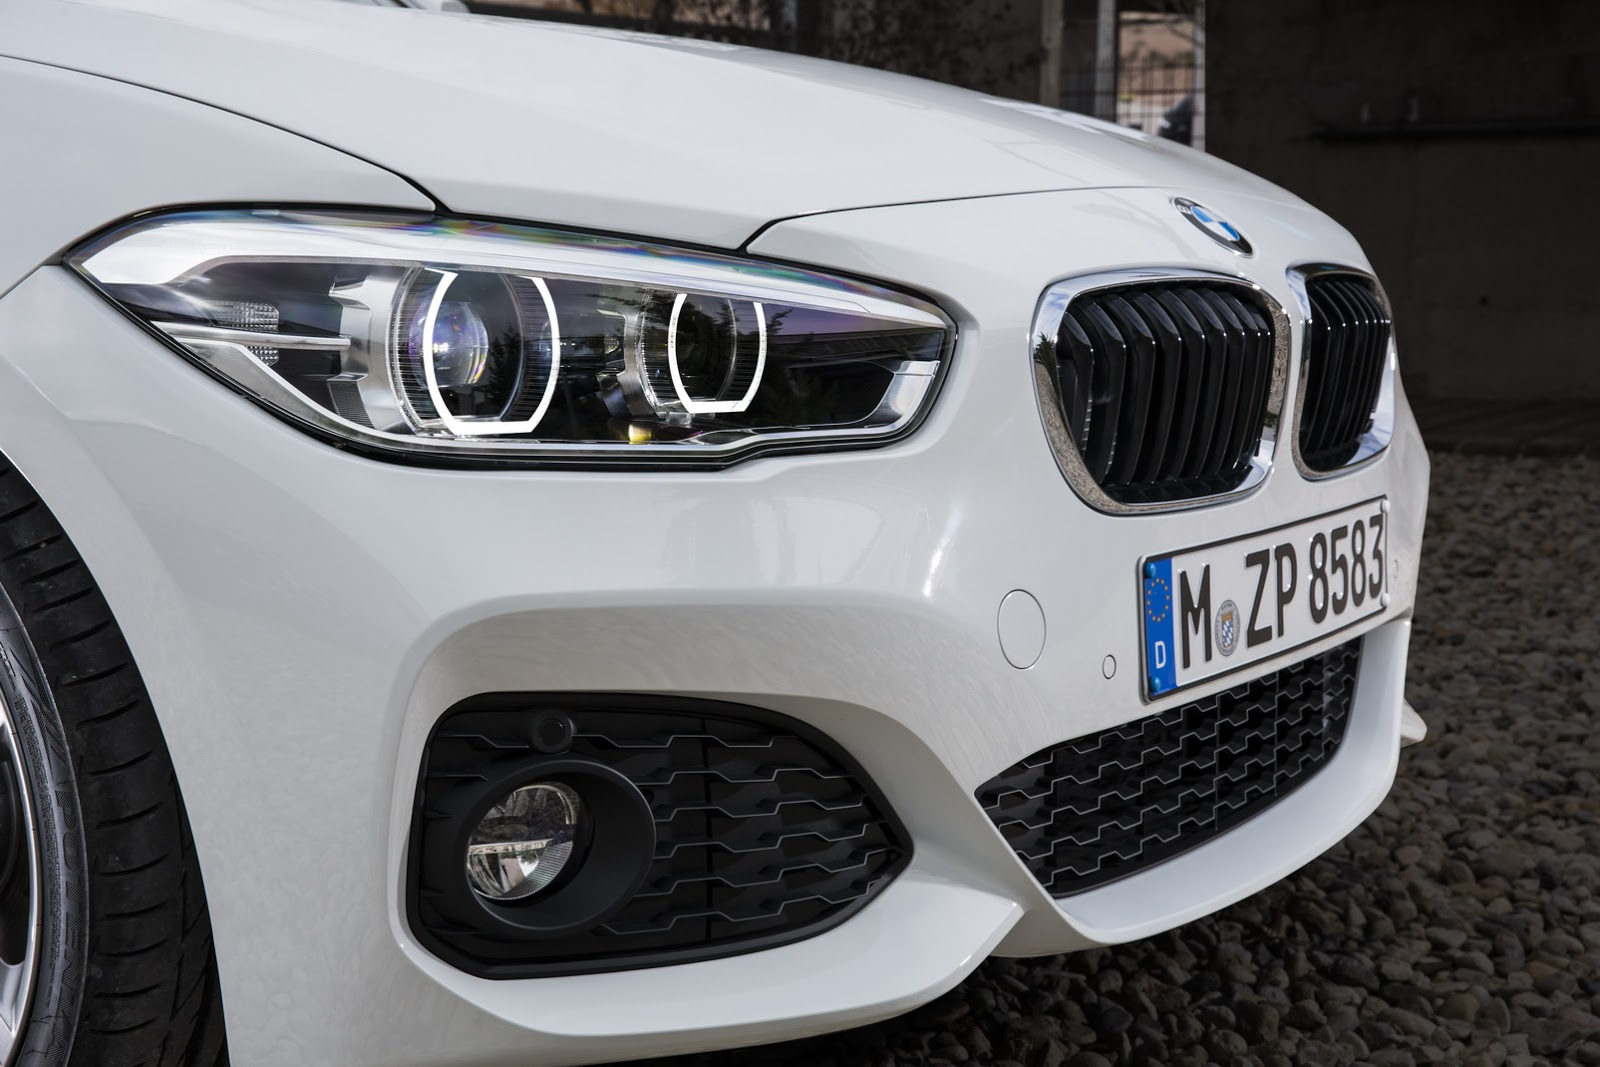 BMW-1-Series-Facelift-23.jpg